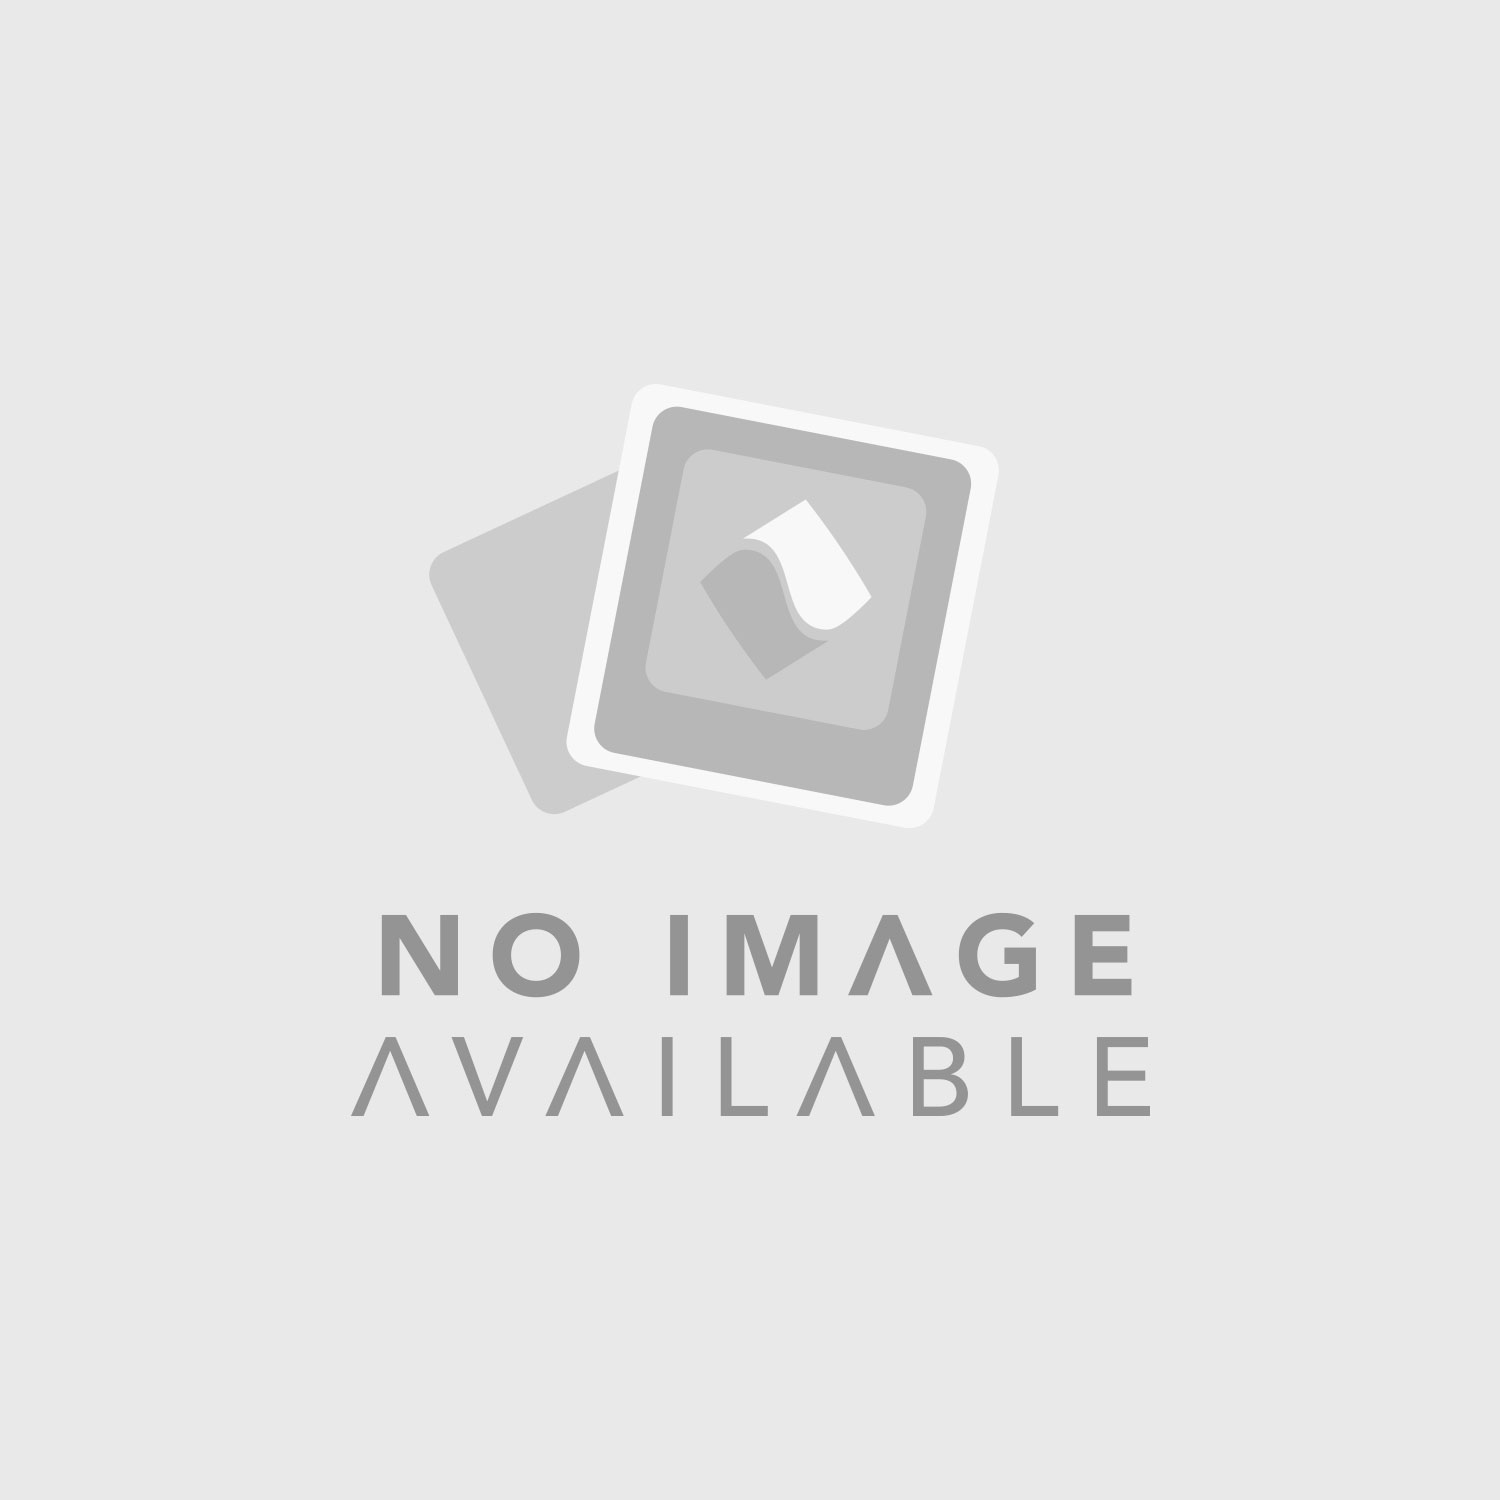 AKG K92 Studio Headphones